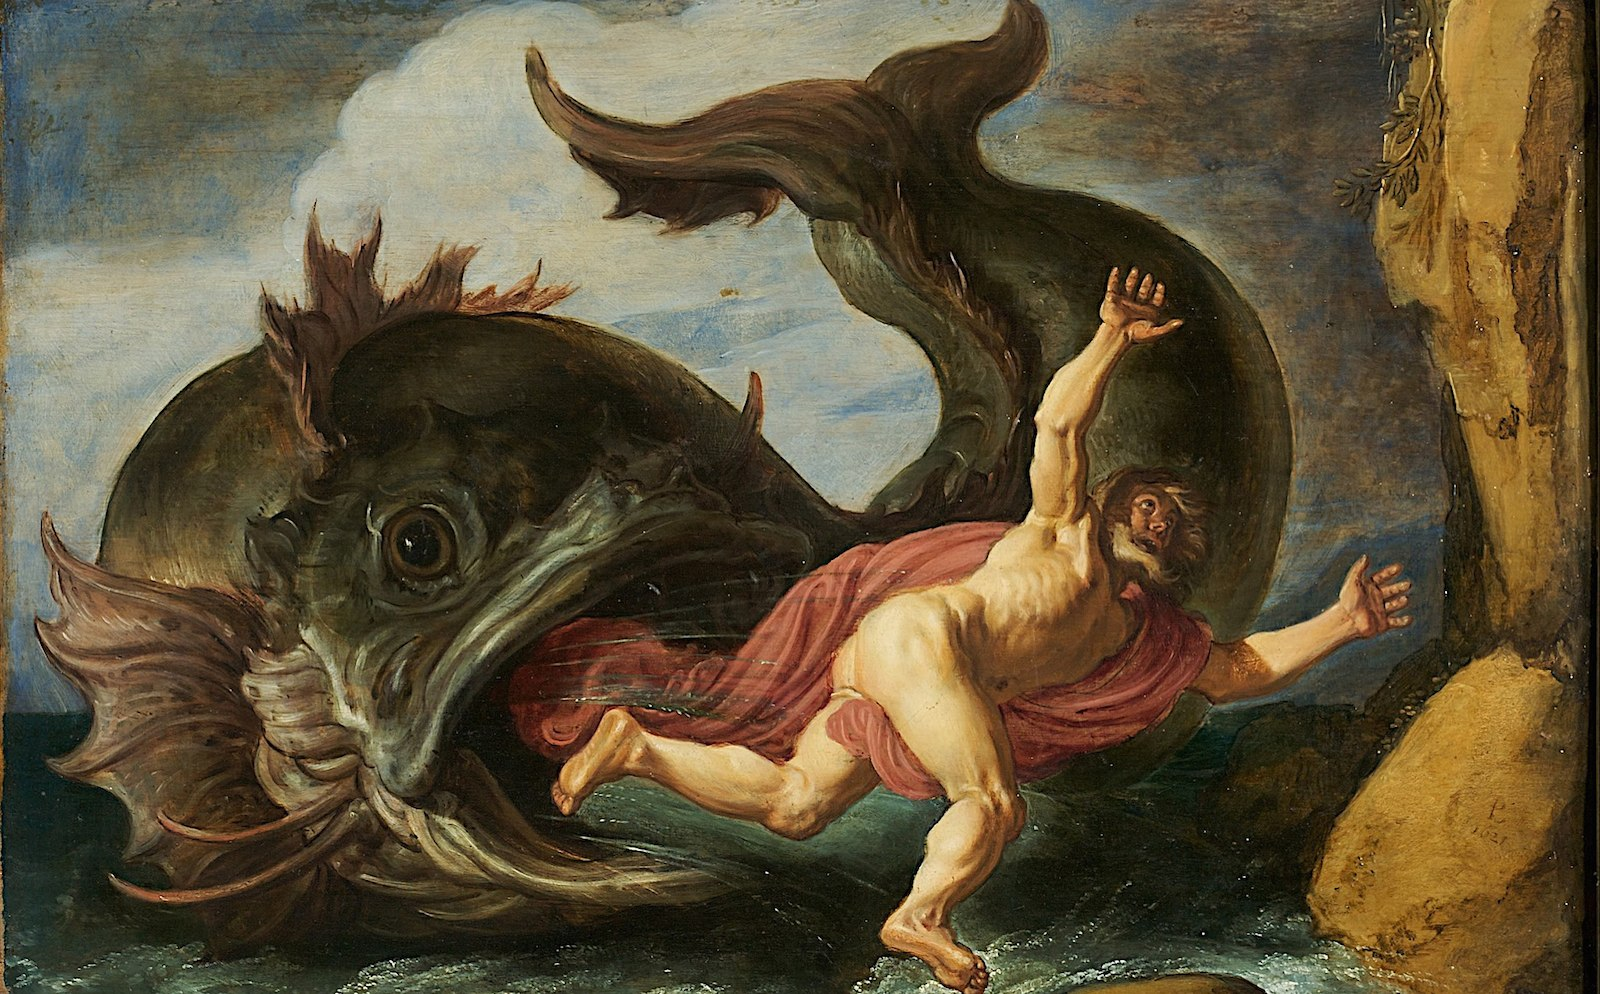 reflection on jonah and the great Daily reflection of creighton jonah hears the invitation to get up some proclaimers of god's word have great success and others moan with discouragement.